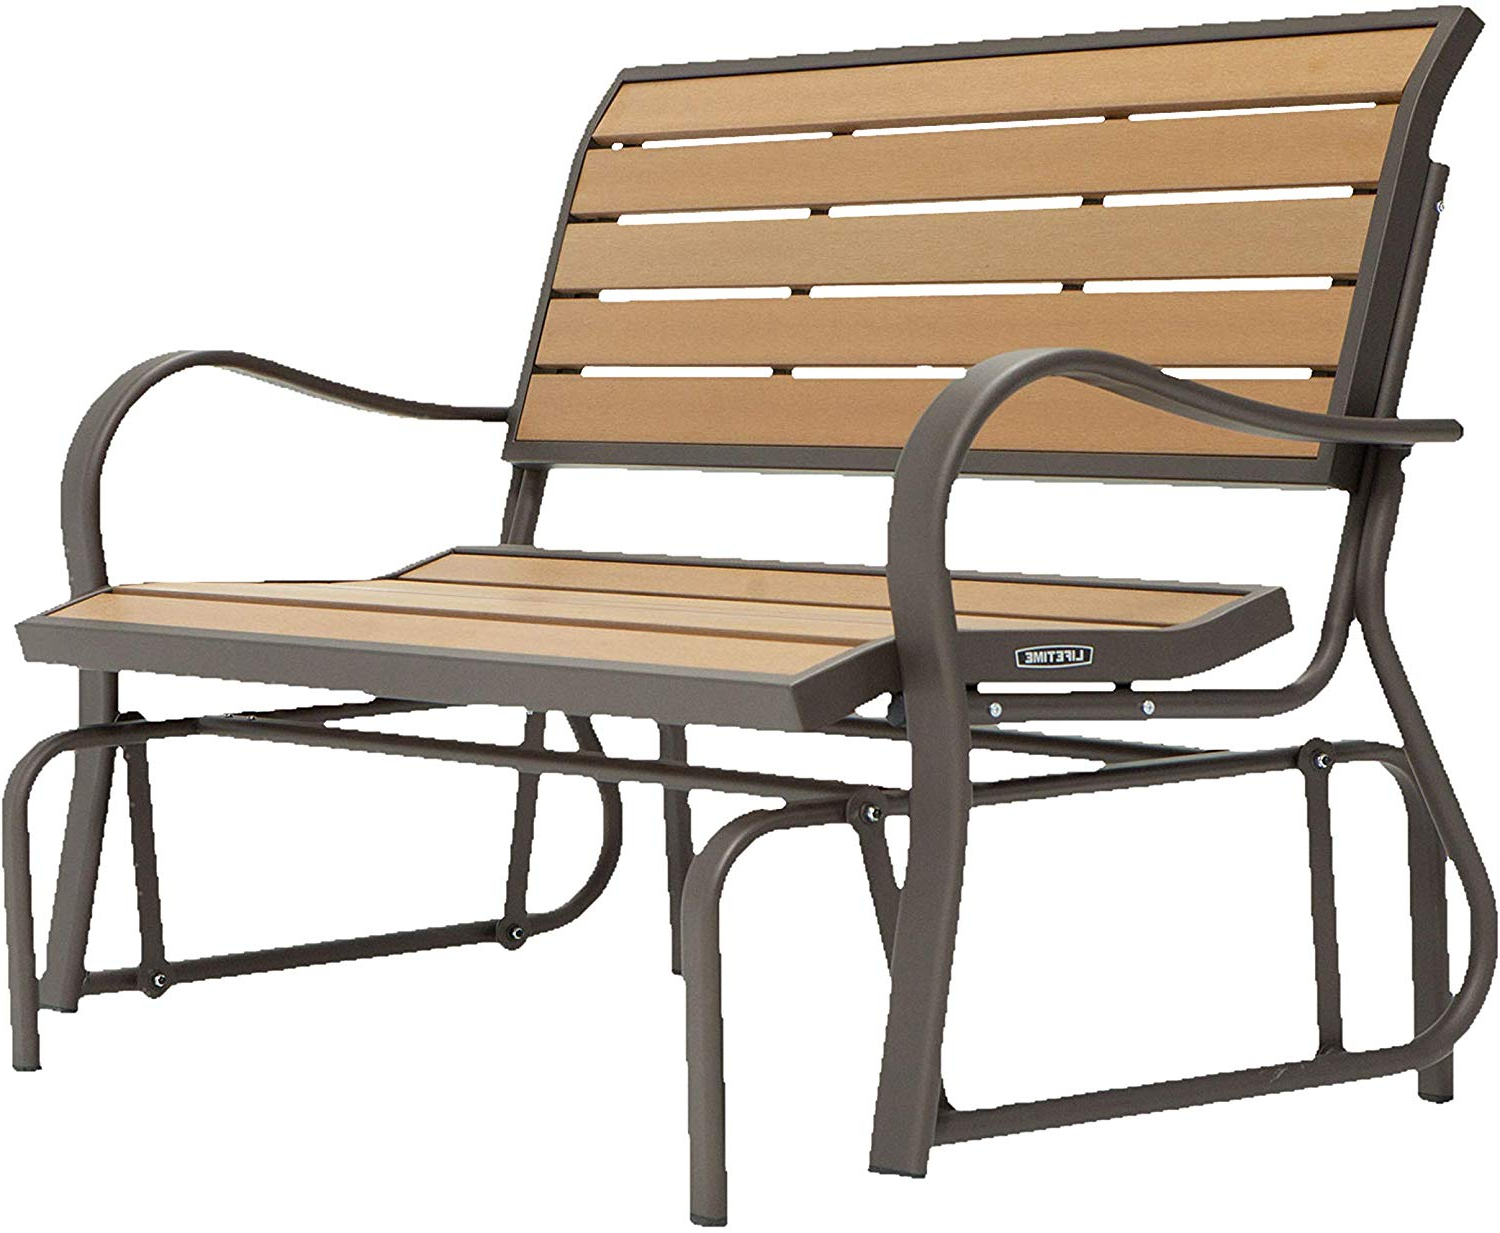 Famous Lifetime 60055 Outdoor Glider Bench, 4', Walnut Brown Regarding Low Back Glider Benches (Gallery 7 of 30)